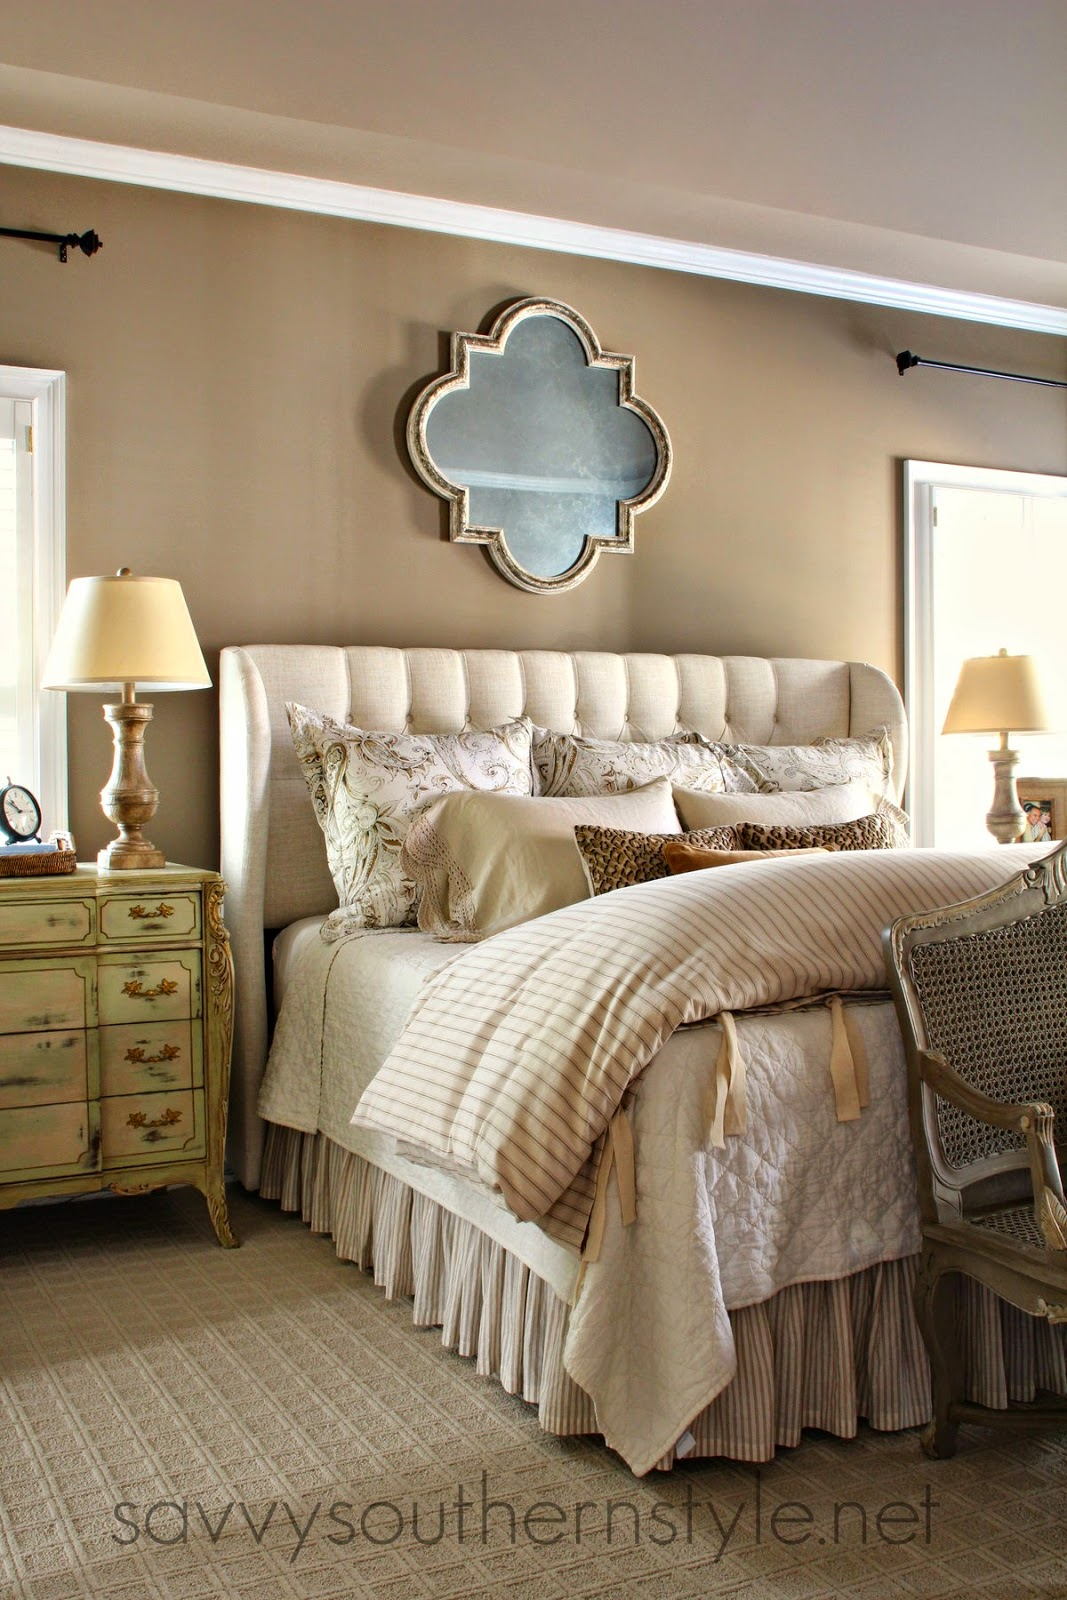 Savvy southern style master bedroom source list for New master bedroom designs